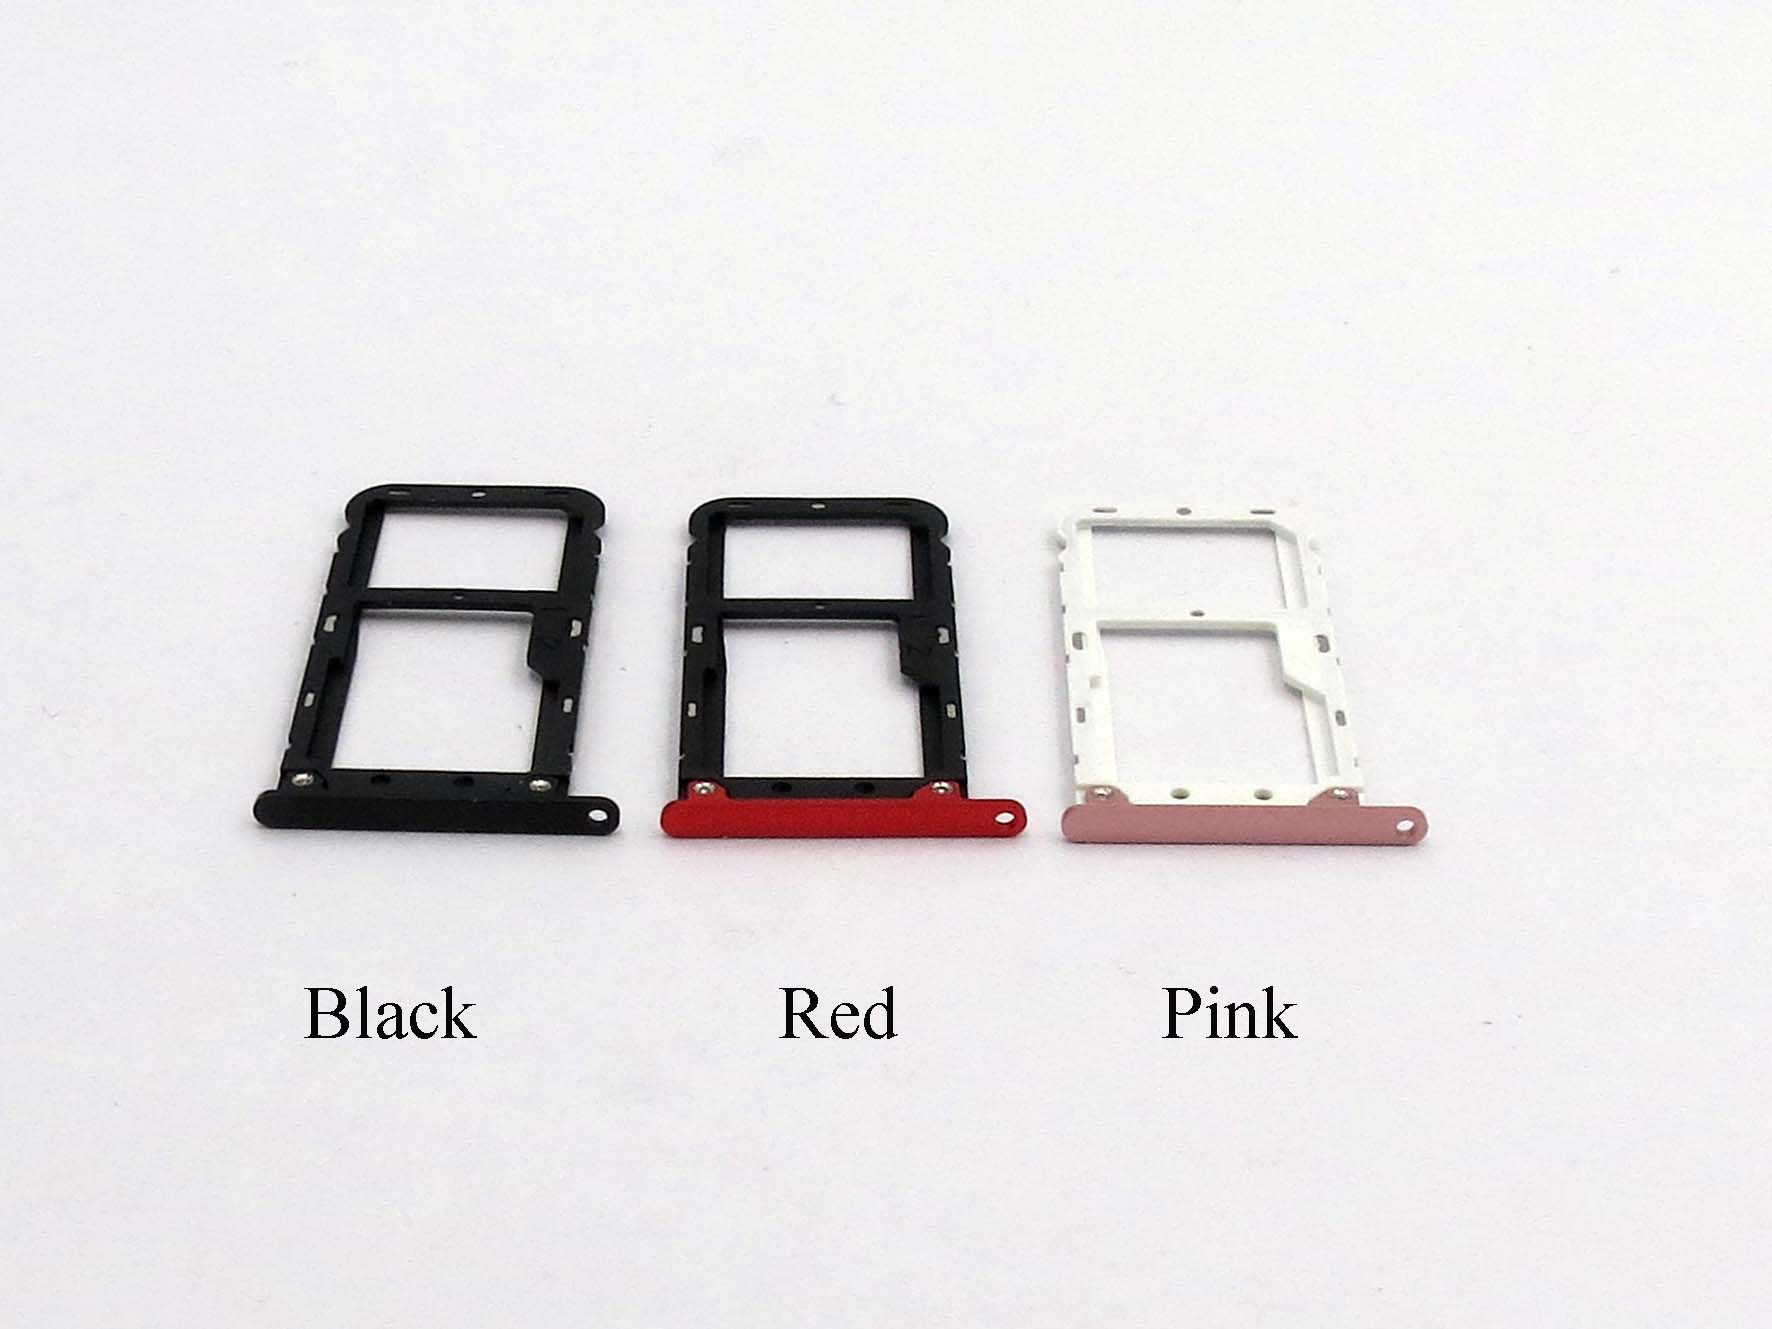 Original Dual Sim Card Slot Tray Holder for xiaomi 5X & A1- Black&Red&Pink&Gold